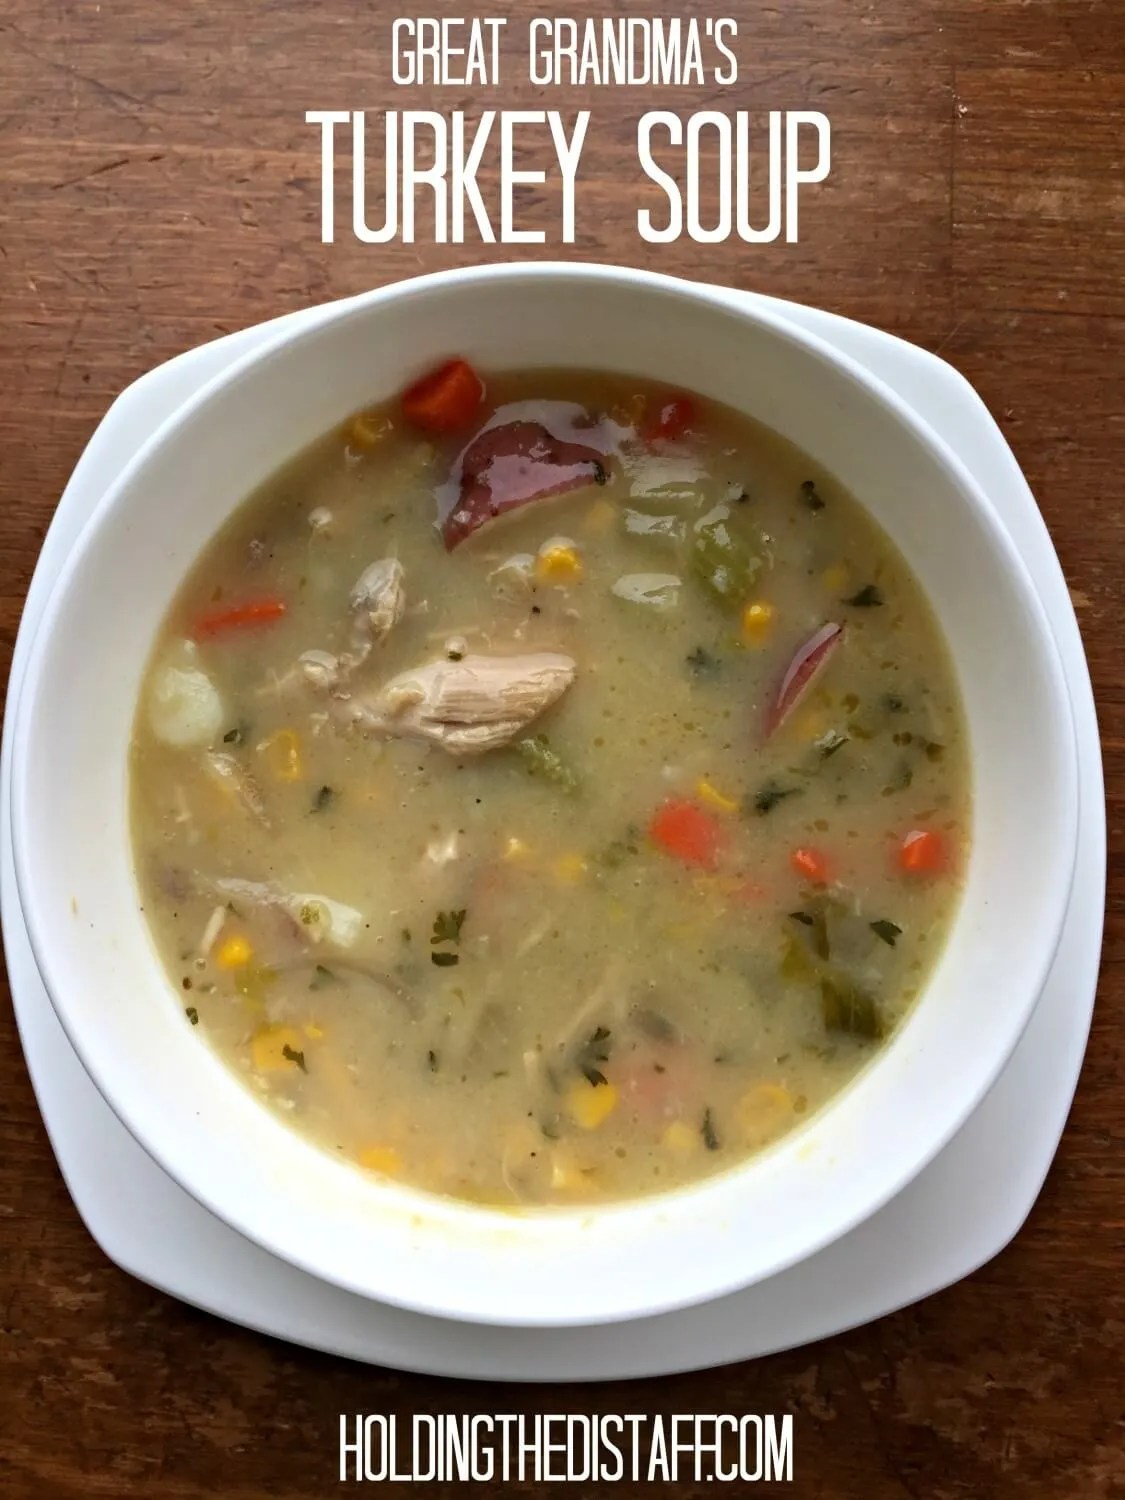 Great Grandma's Turkey Soup: This old-timey recipe is perfect for Thanksgiving leftovers.